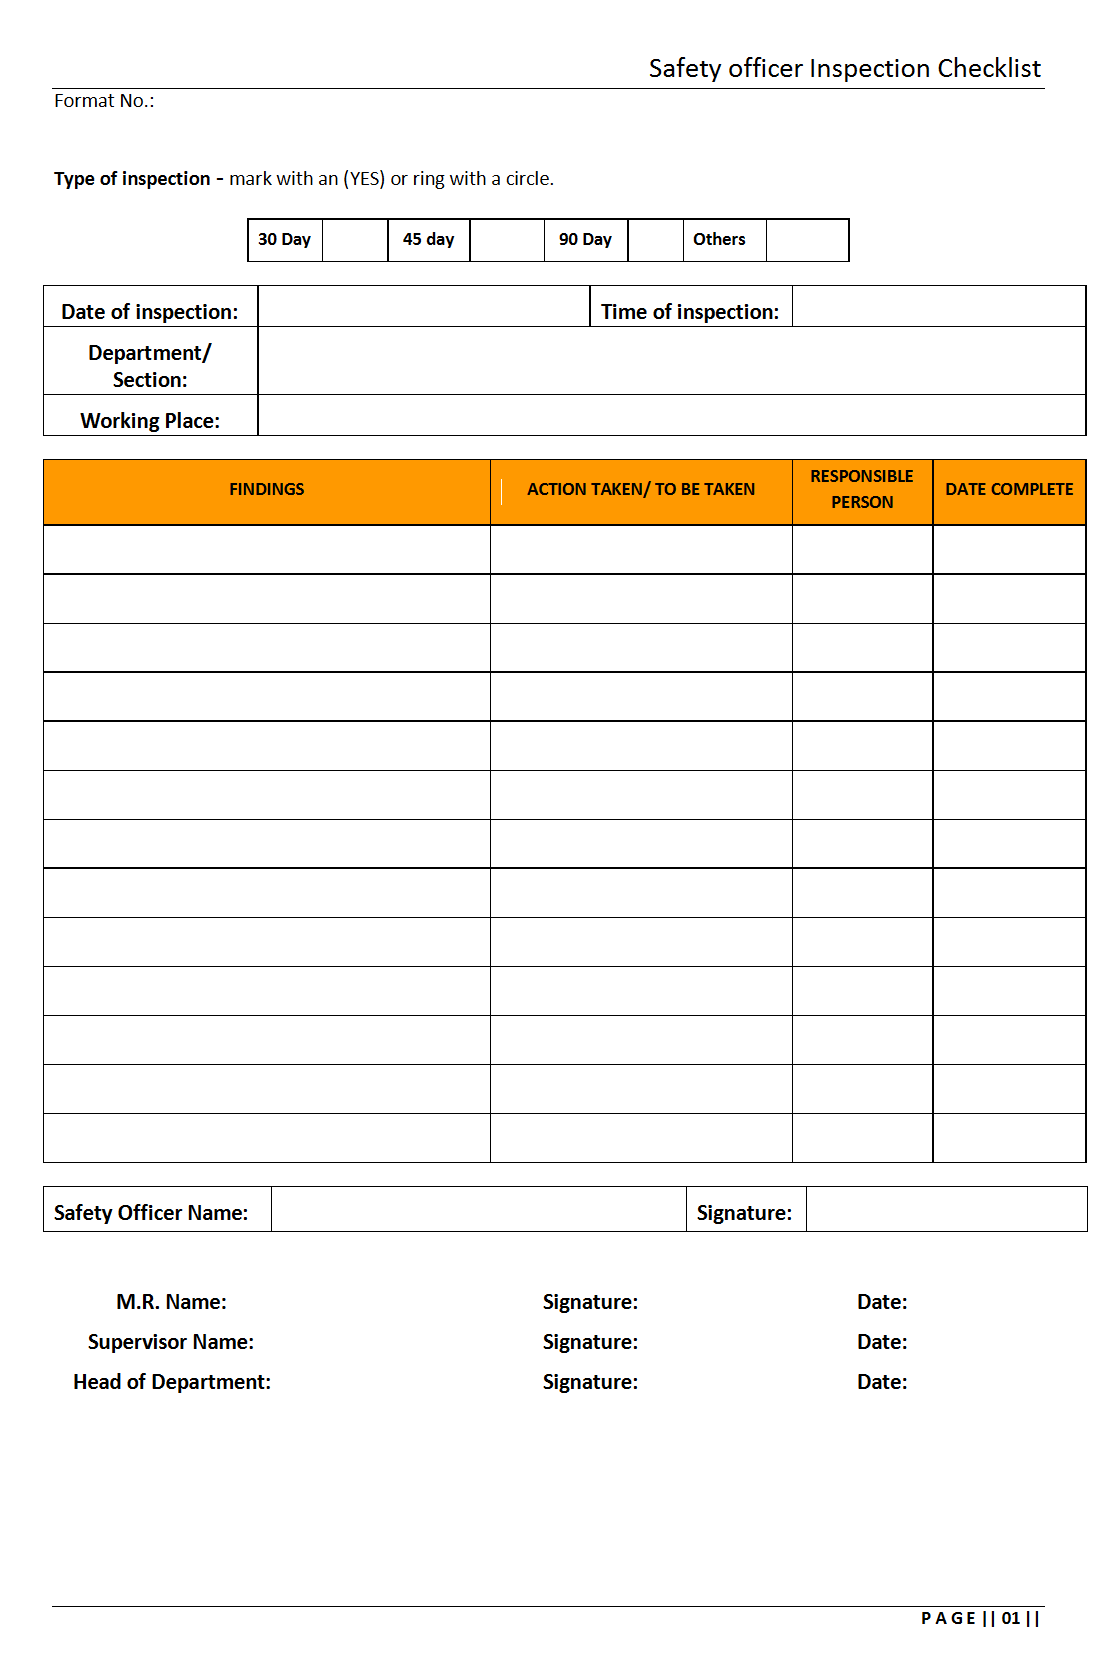 Safety Officer Inspection Checklist